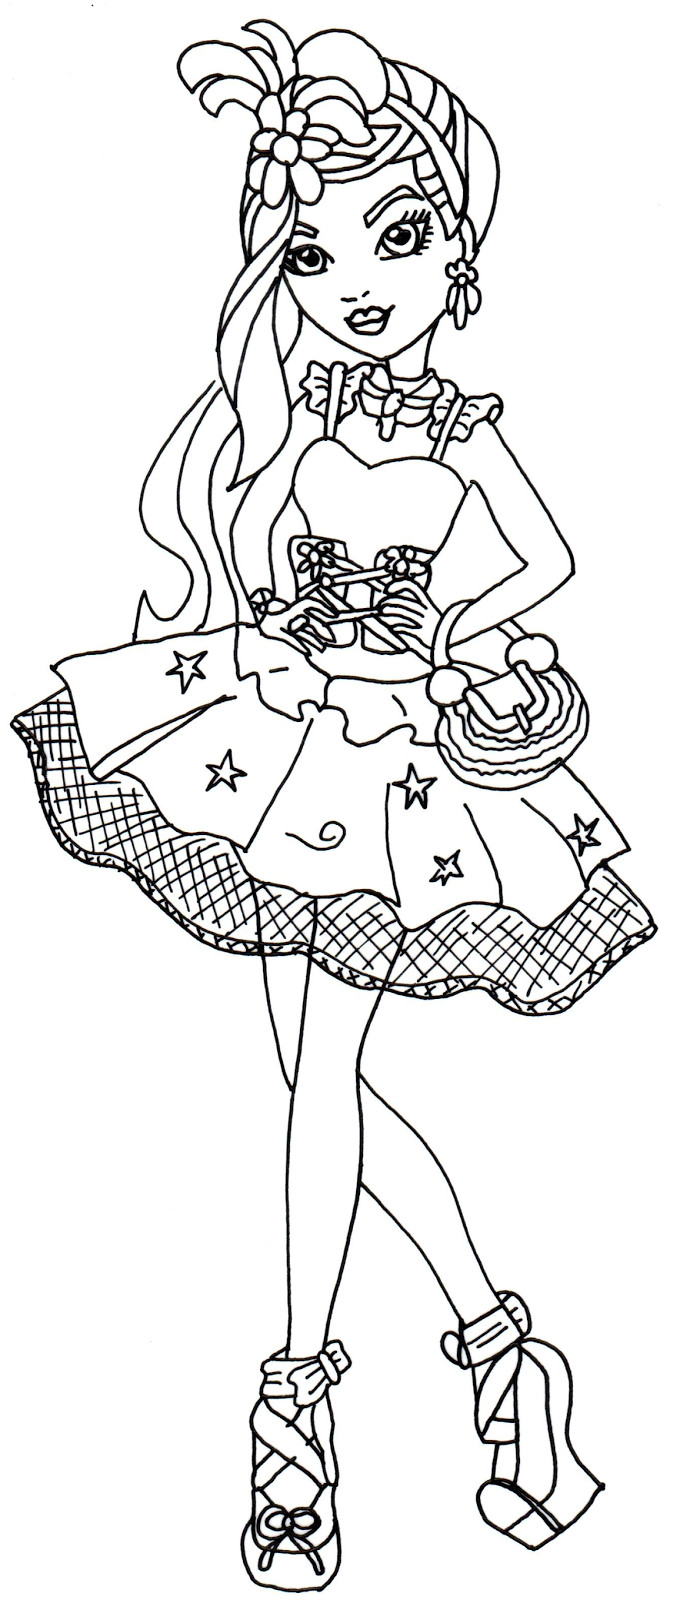 680x1600 Free Printable Ever After High Coloring Pages Duchess Swan Showy